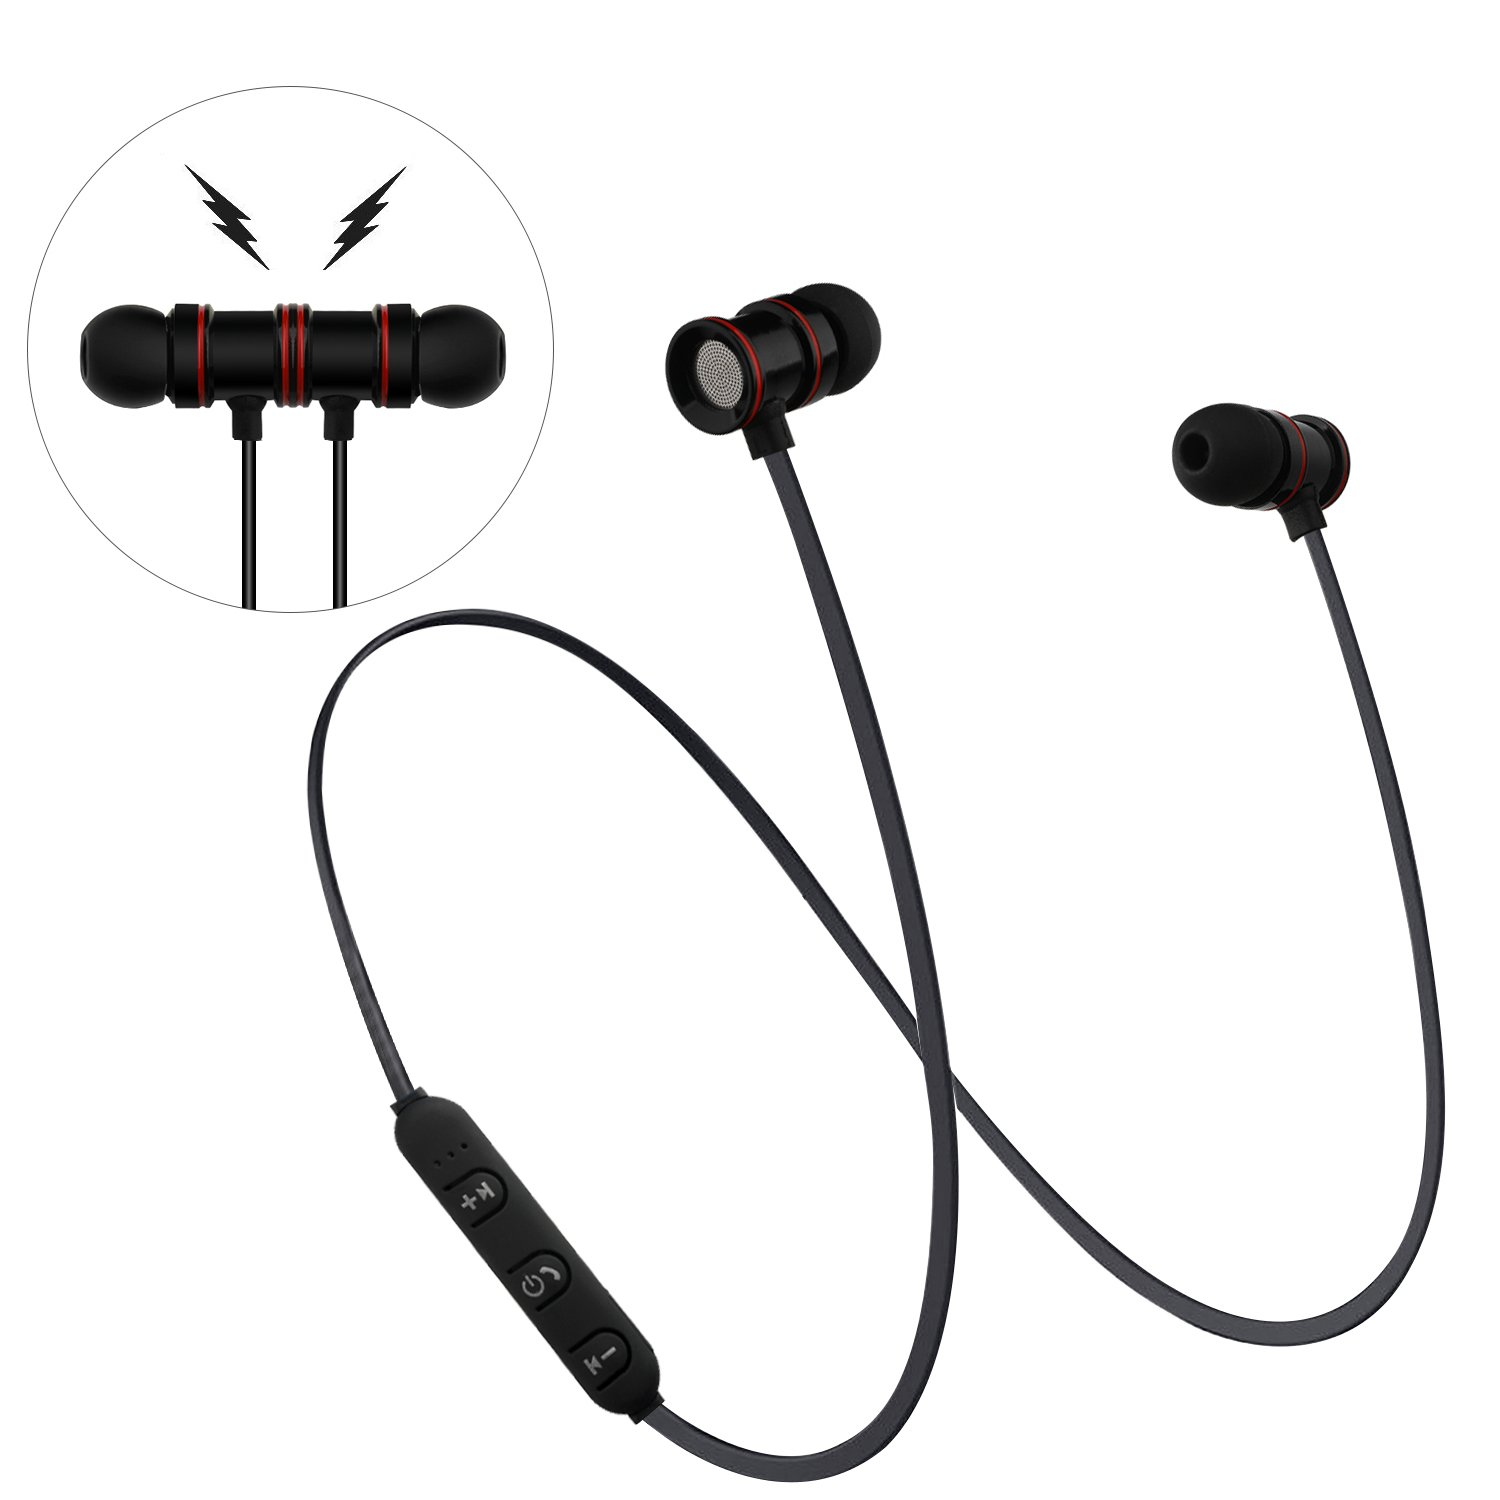 AFRGZFOR Bluetooth Headphones,Wireless Headphones V4.1 Magnetic in-Ear Stereo Earphones,6 Hours,Noise Cancelling,Sweat Proof Earphones Sports Sweatproof Headset with Mic for Sport Black